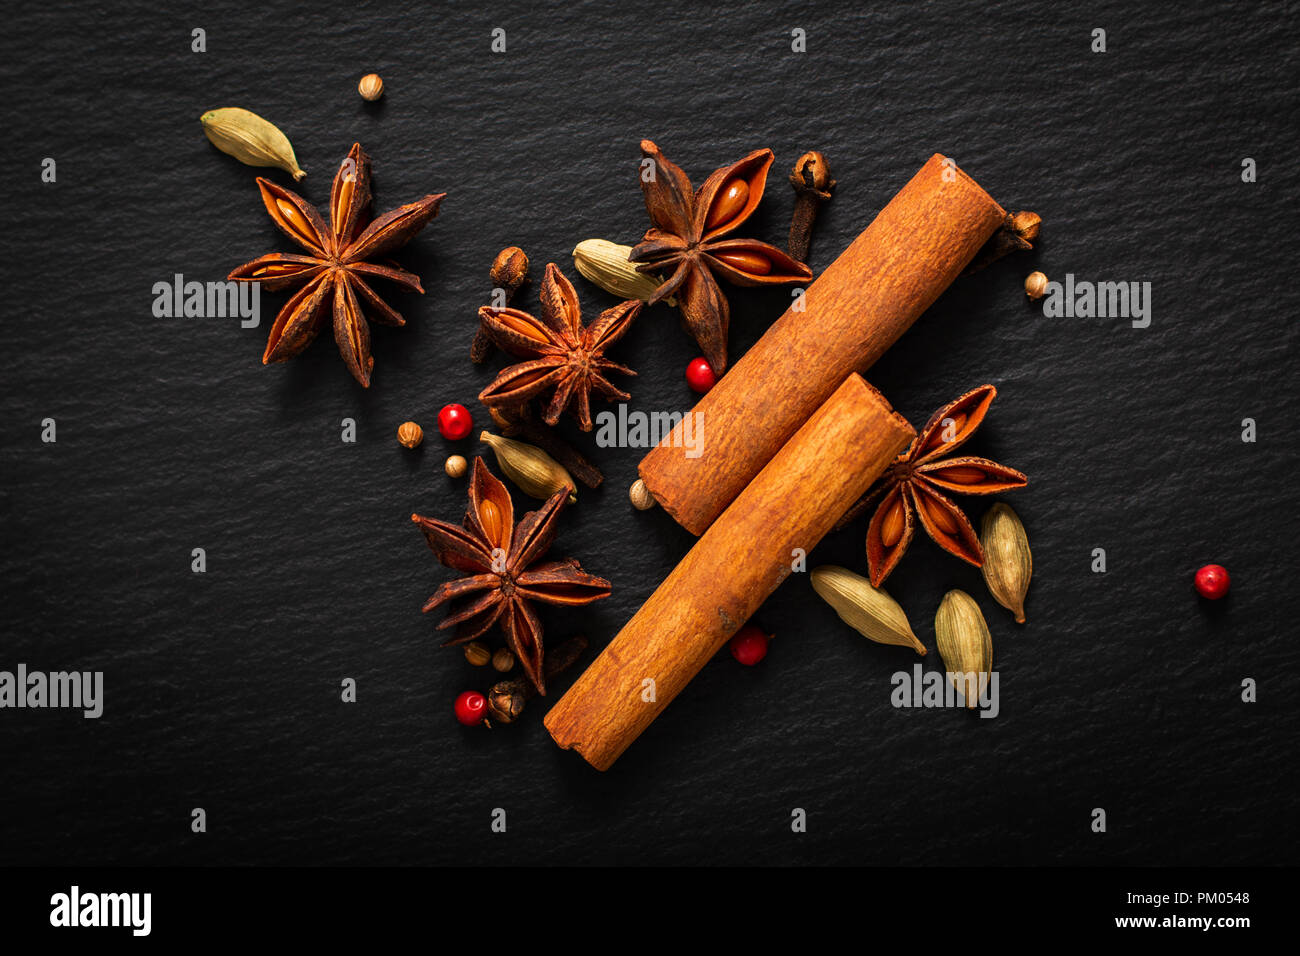 Food background close up organic various spices on black slate board Stock Photo